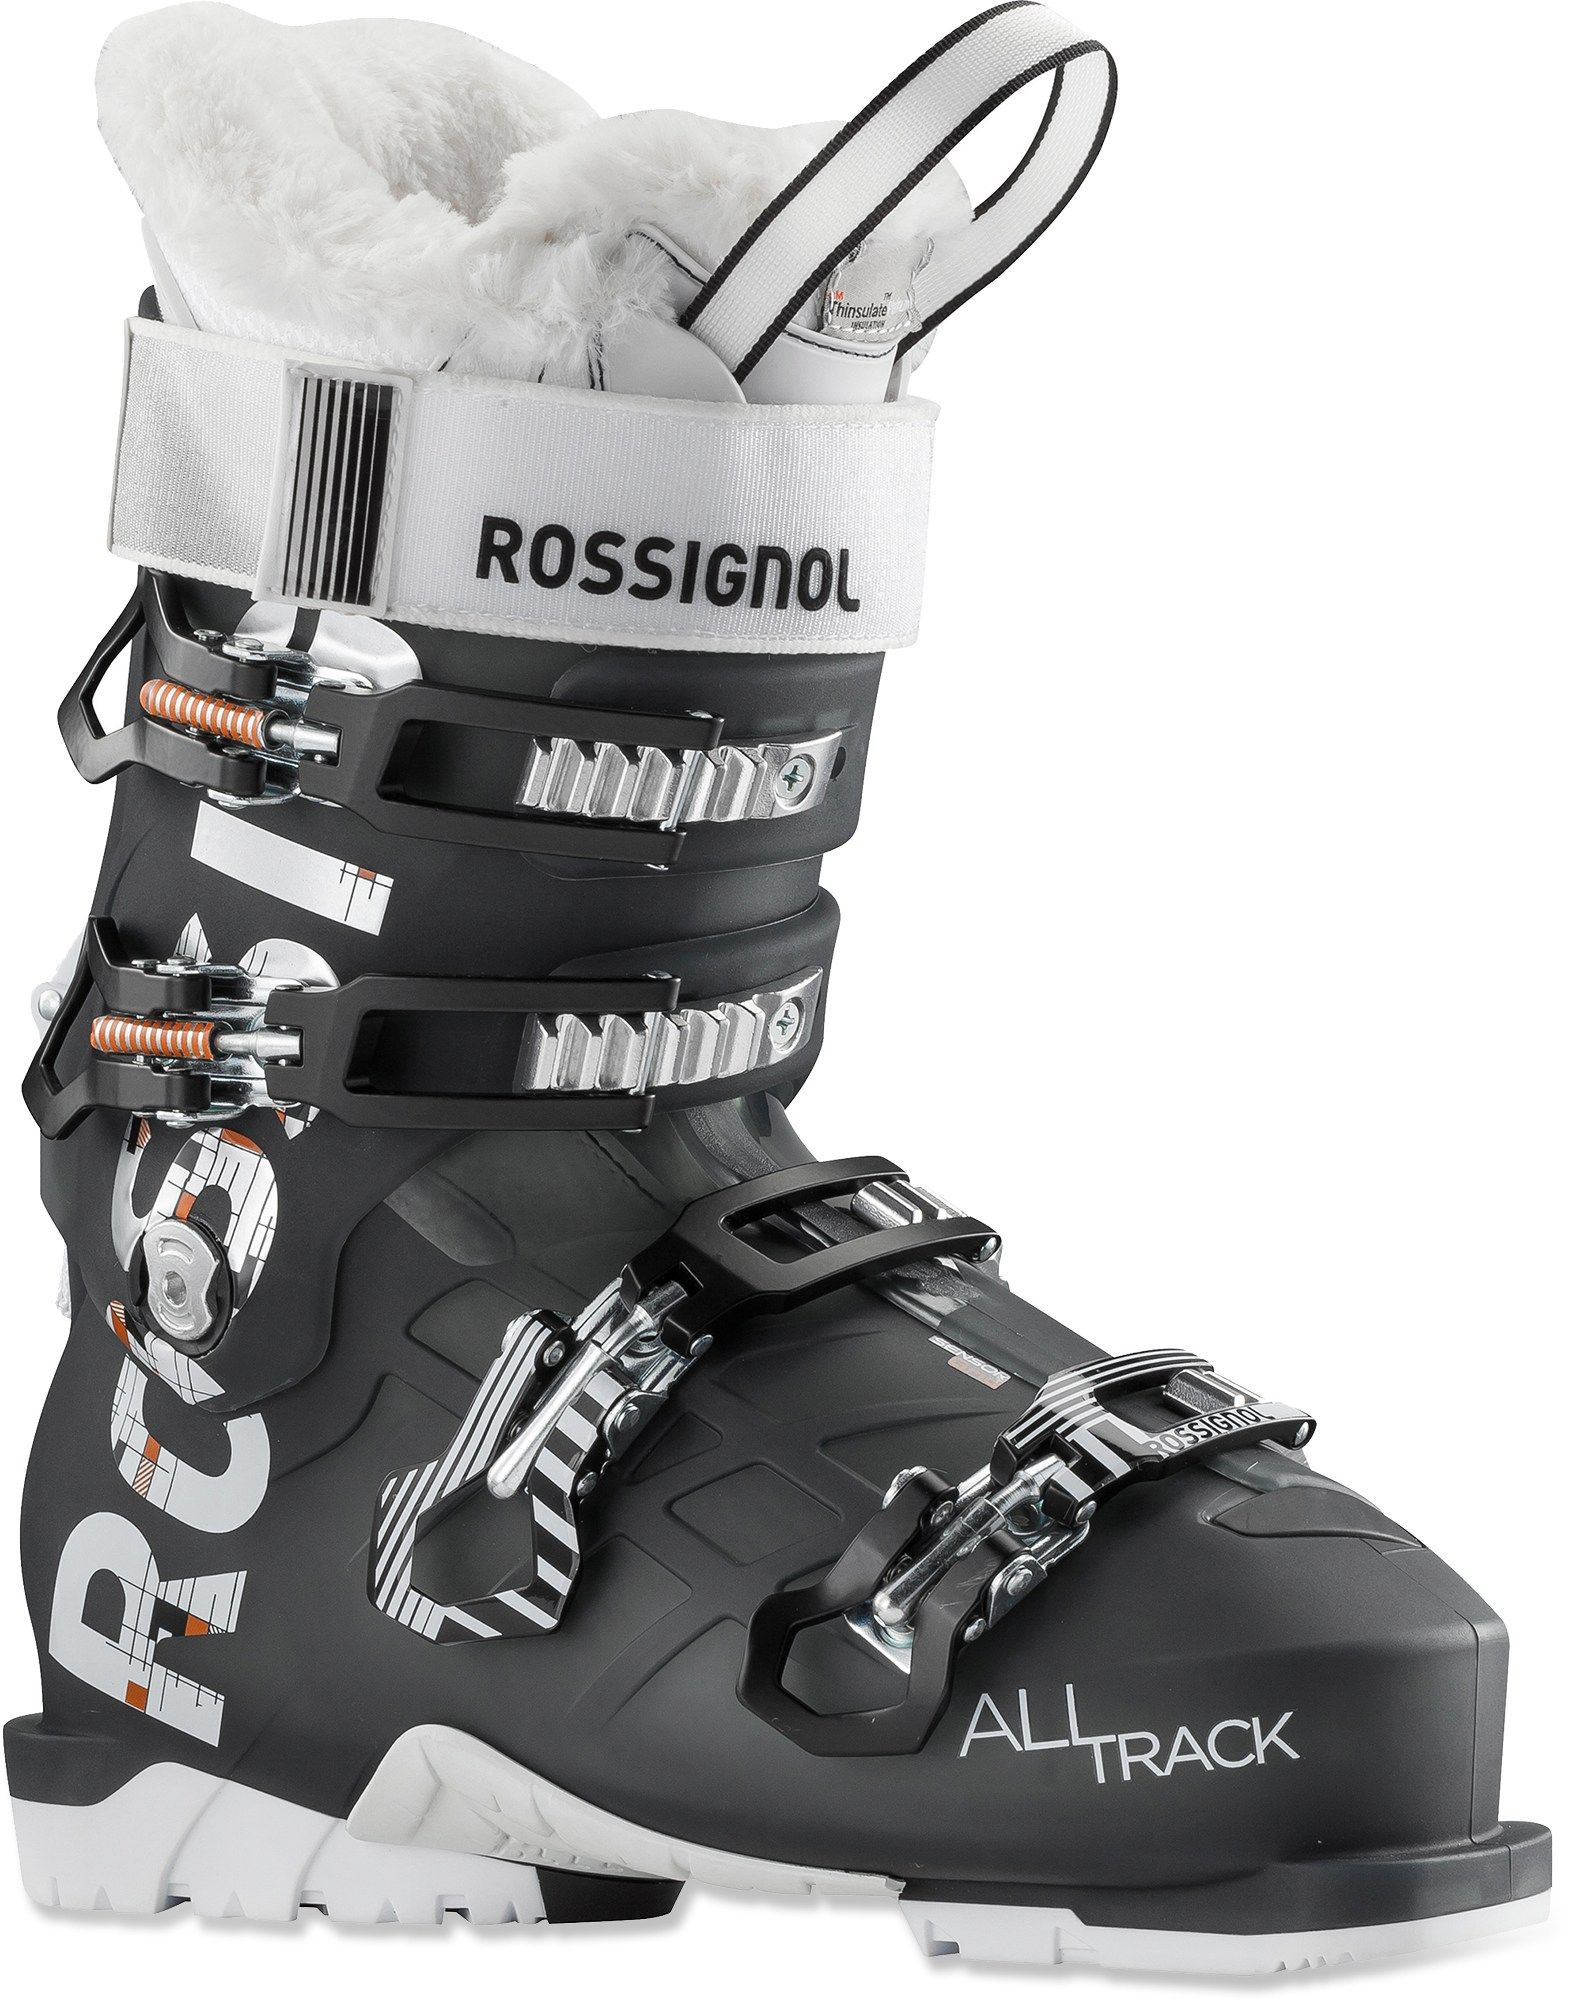 d2cc95c03f0dd2 All Track Pro 100 Ski Boots - Women's - 2015/2016 | *Sporting Goods ...